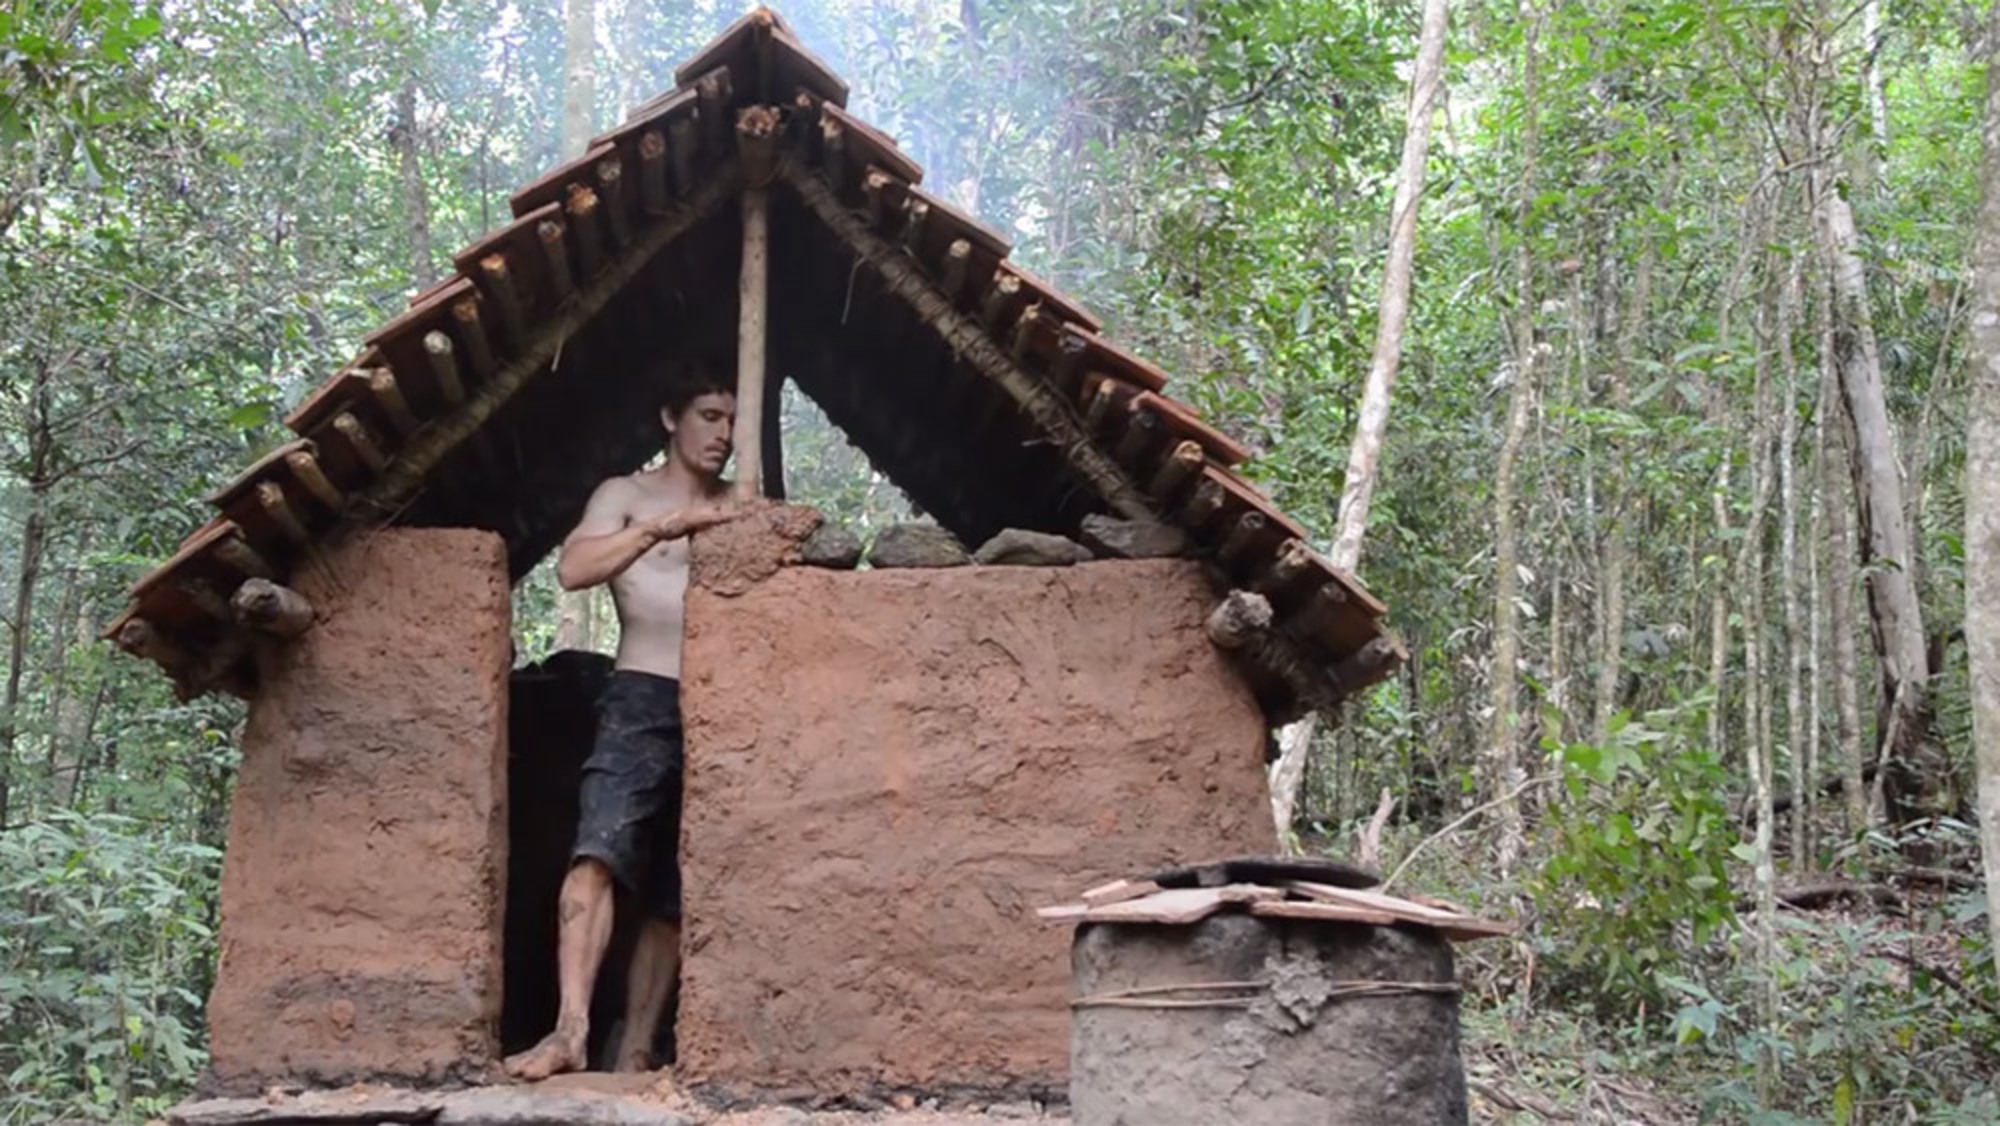 Make Shelter How To Build An Awesome Hut Only With